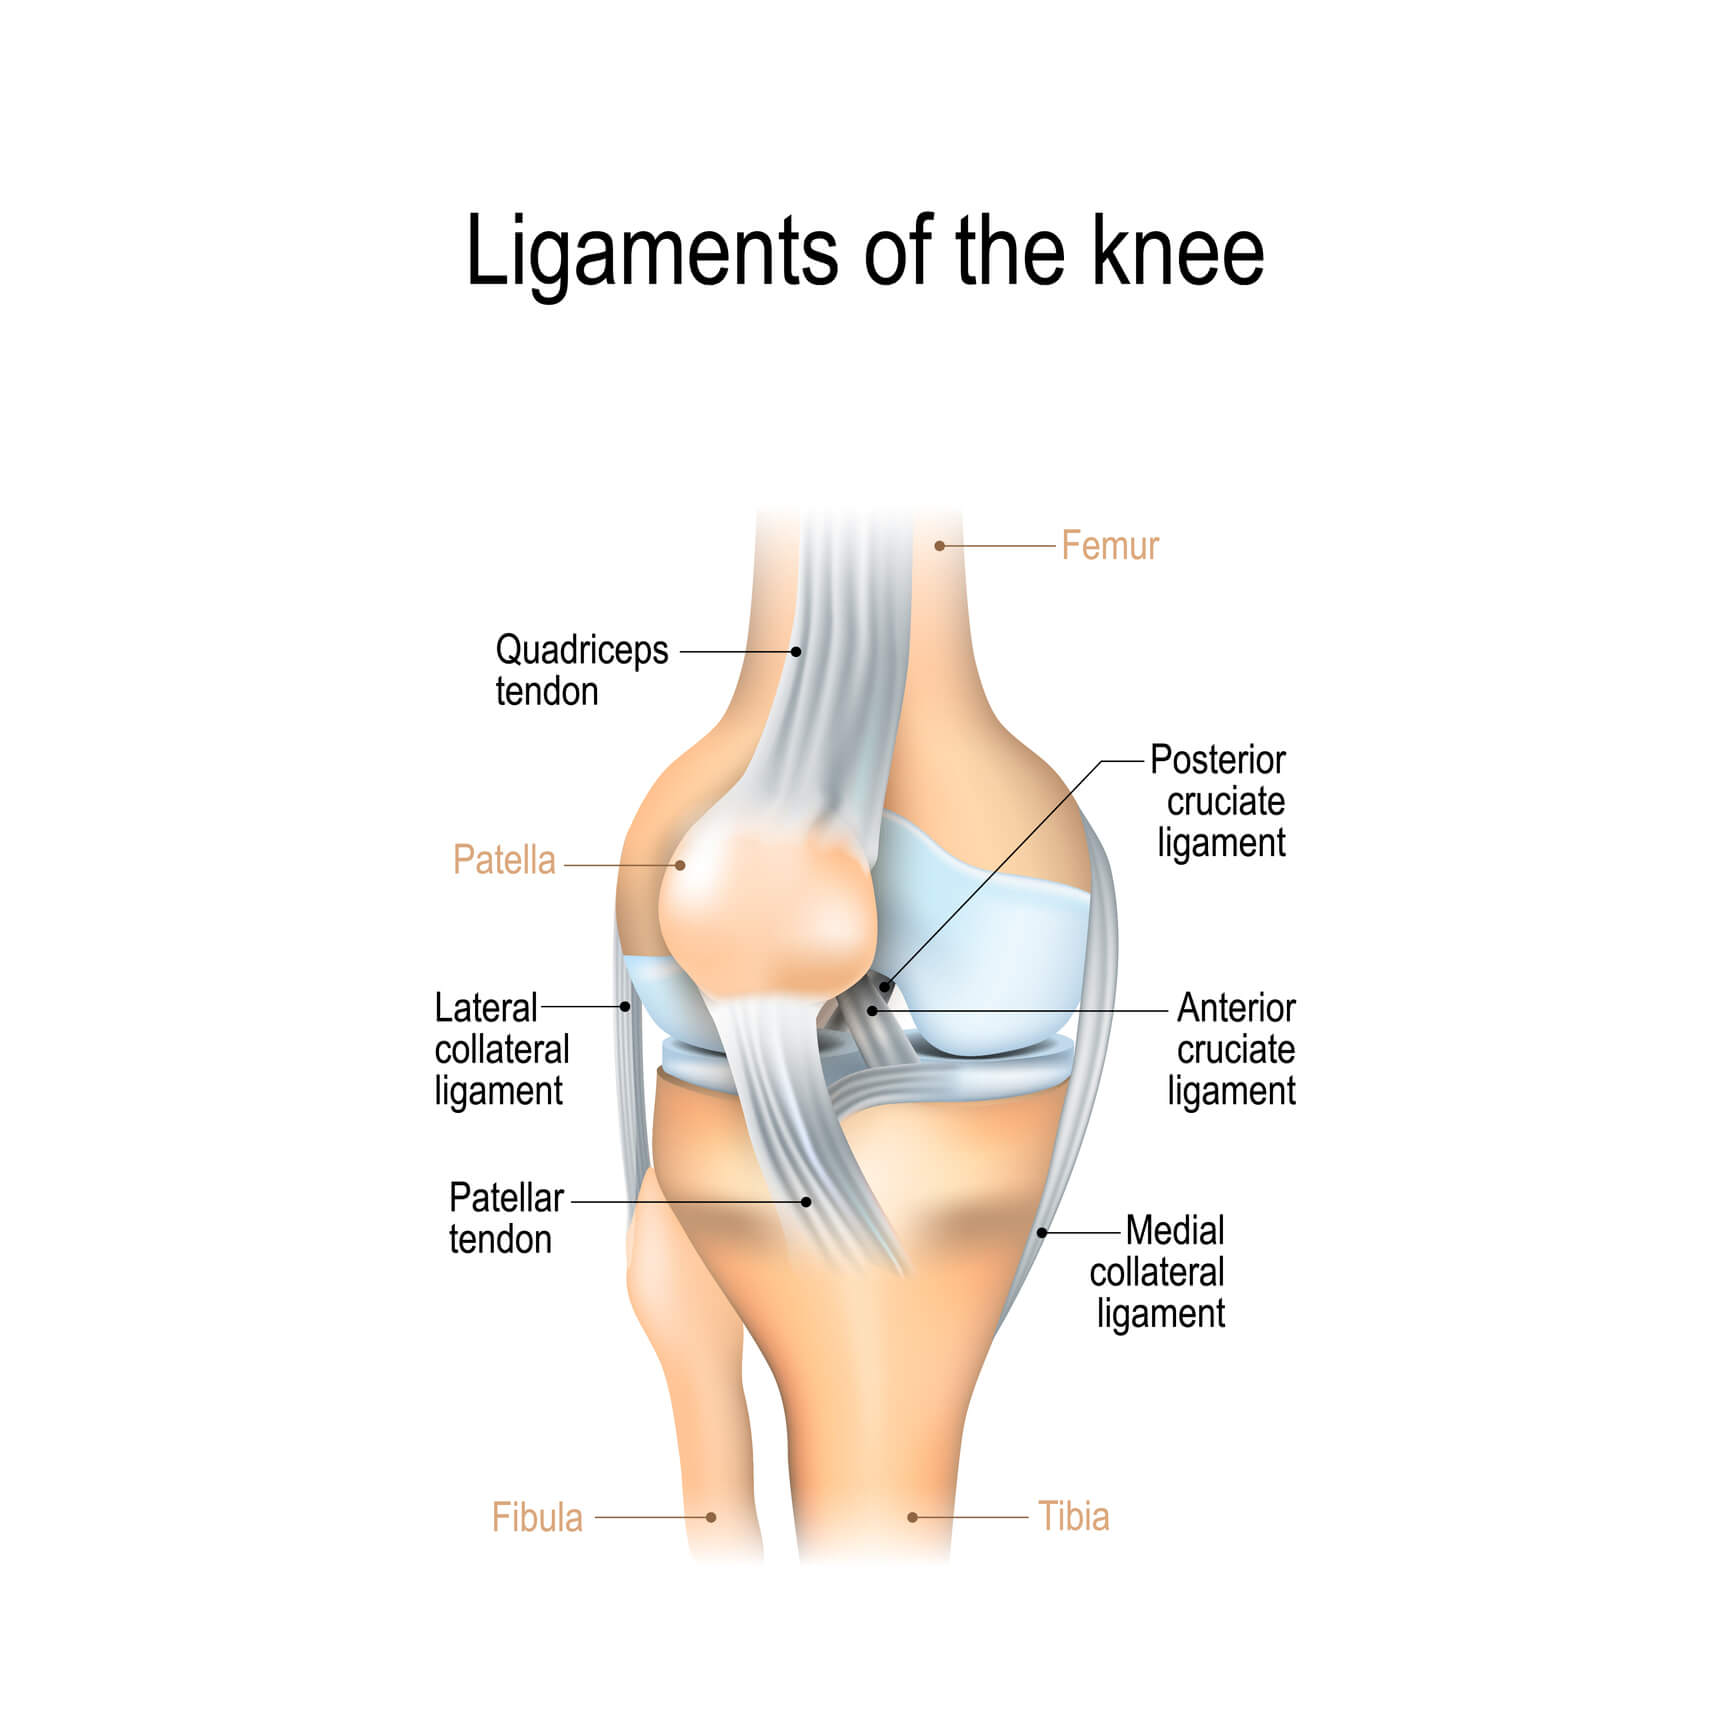 Image of the human knee and its ligaments including the MCL, LCL, PCL and ACL